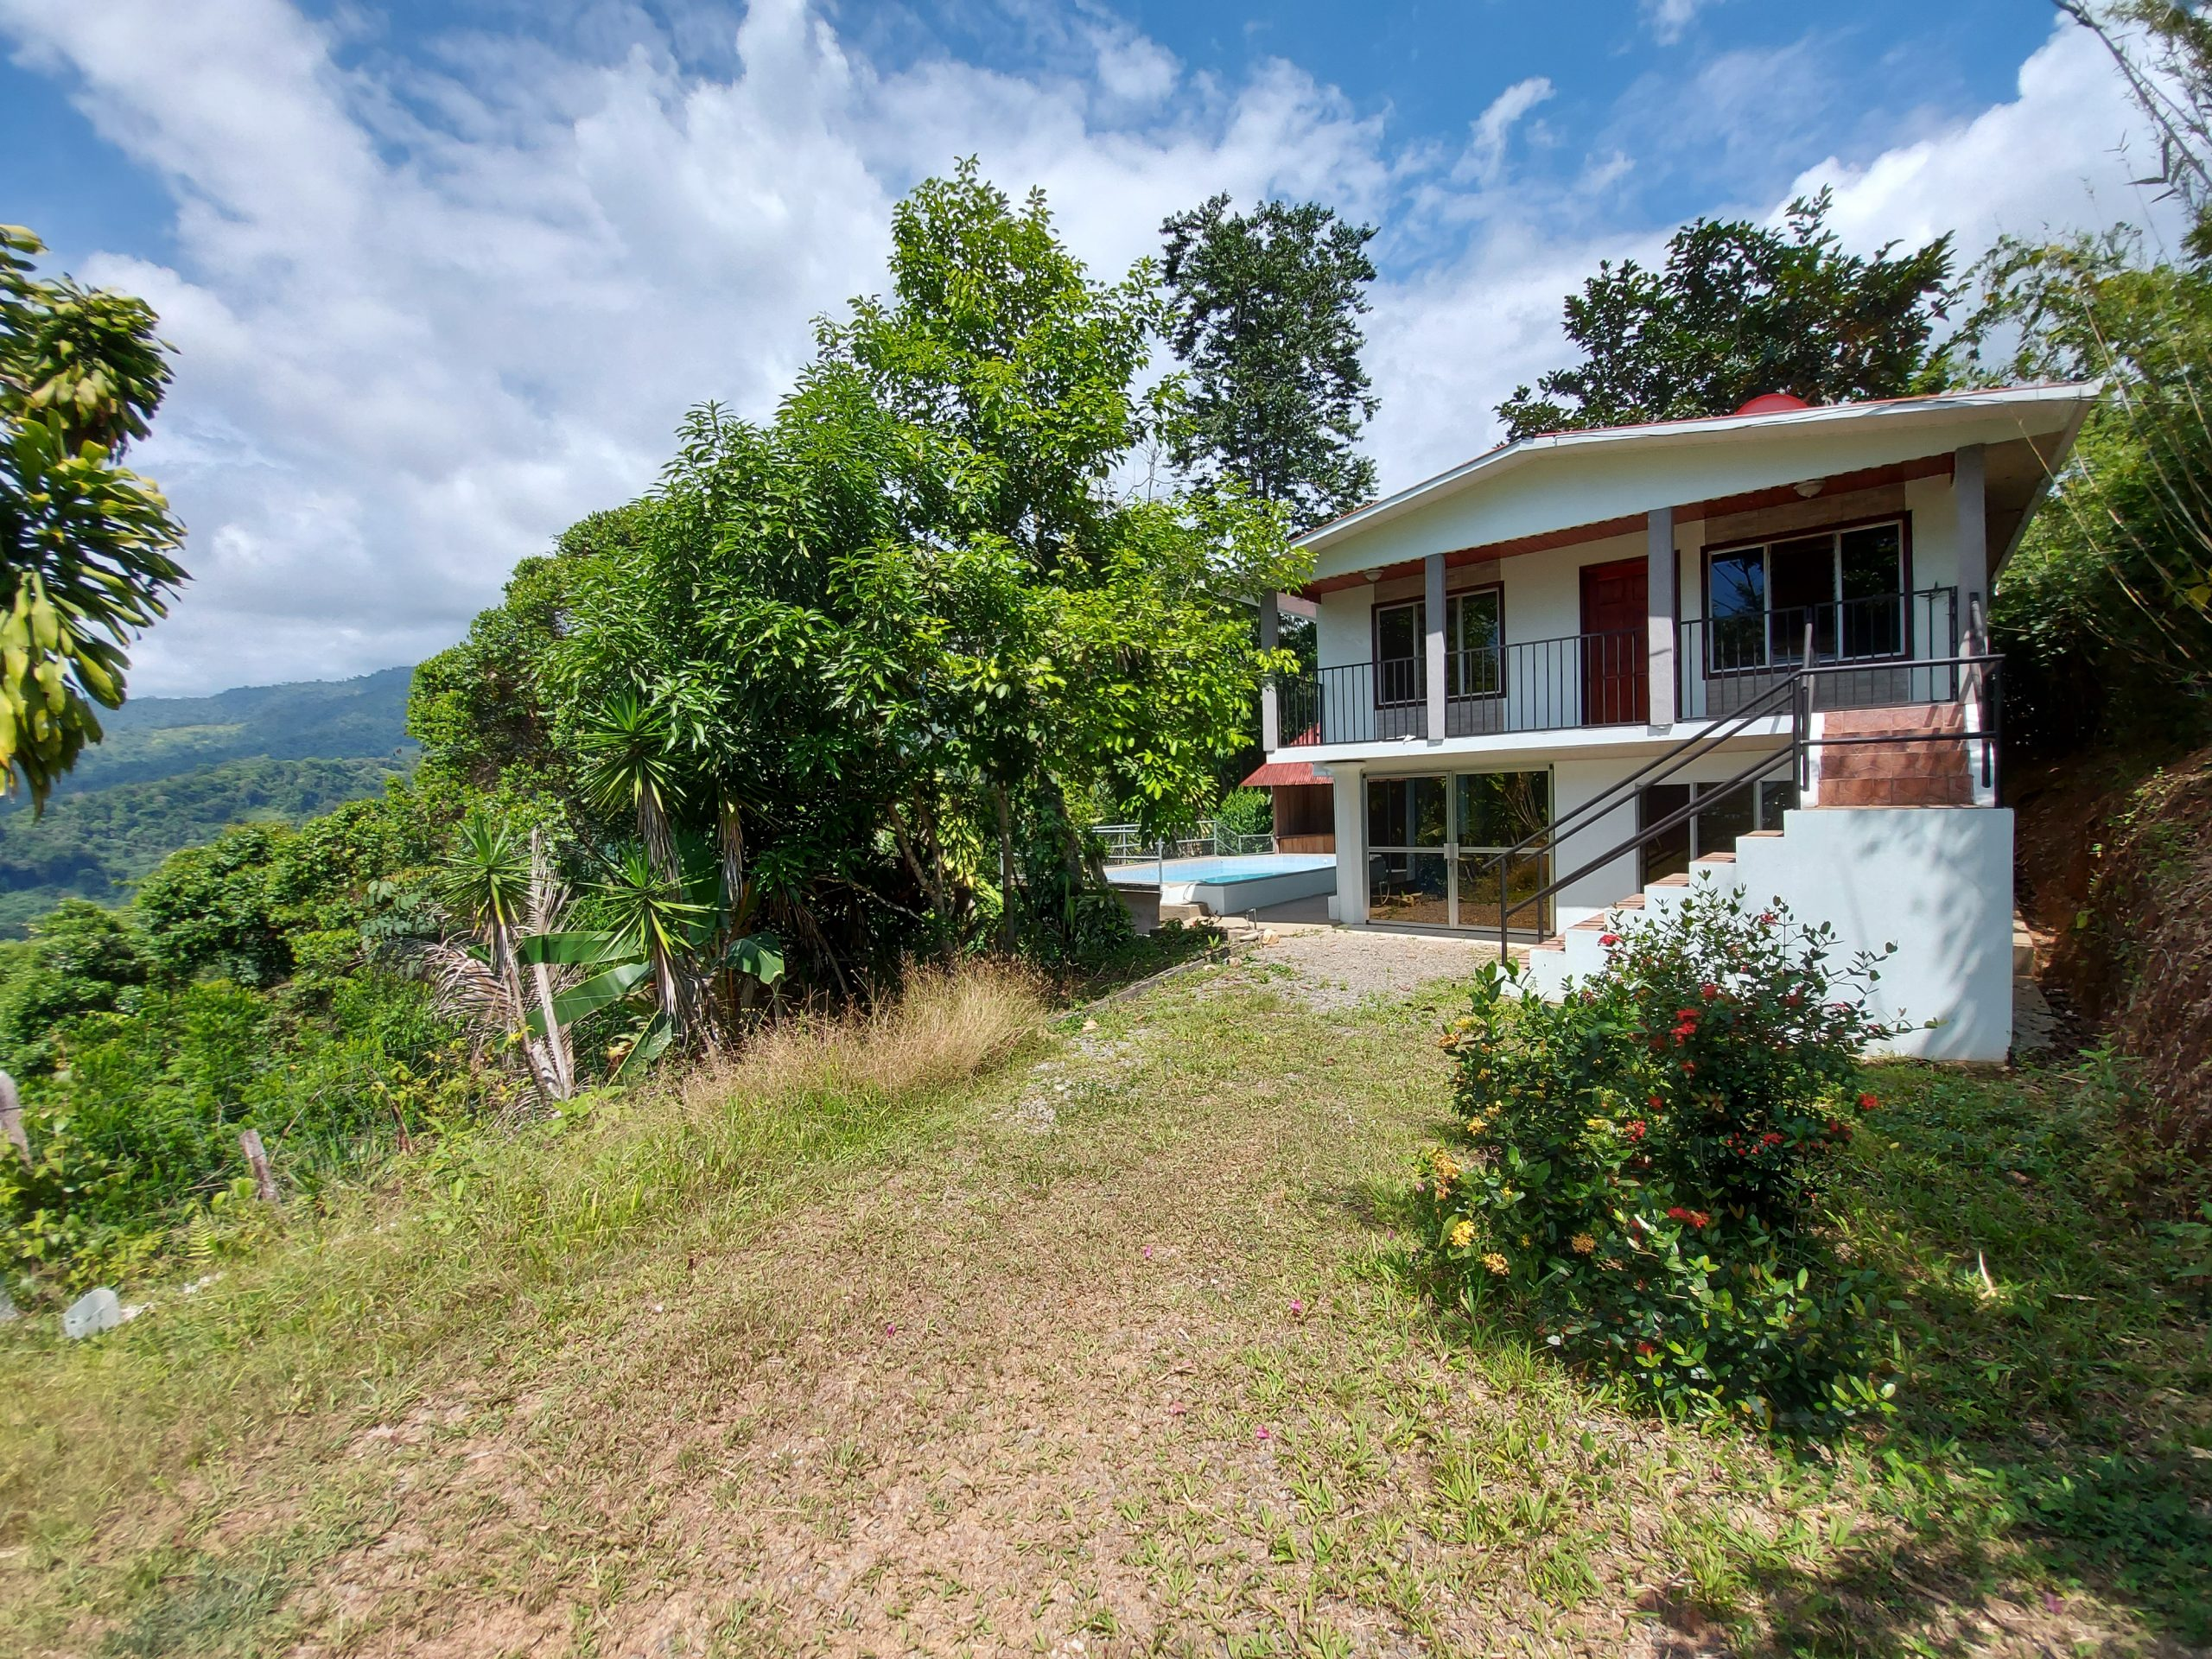 Two-story house with pool and mountain views in Caña Blanca, Baru